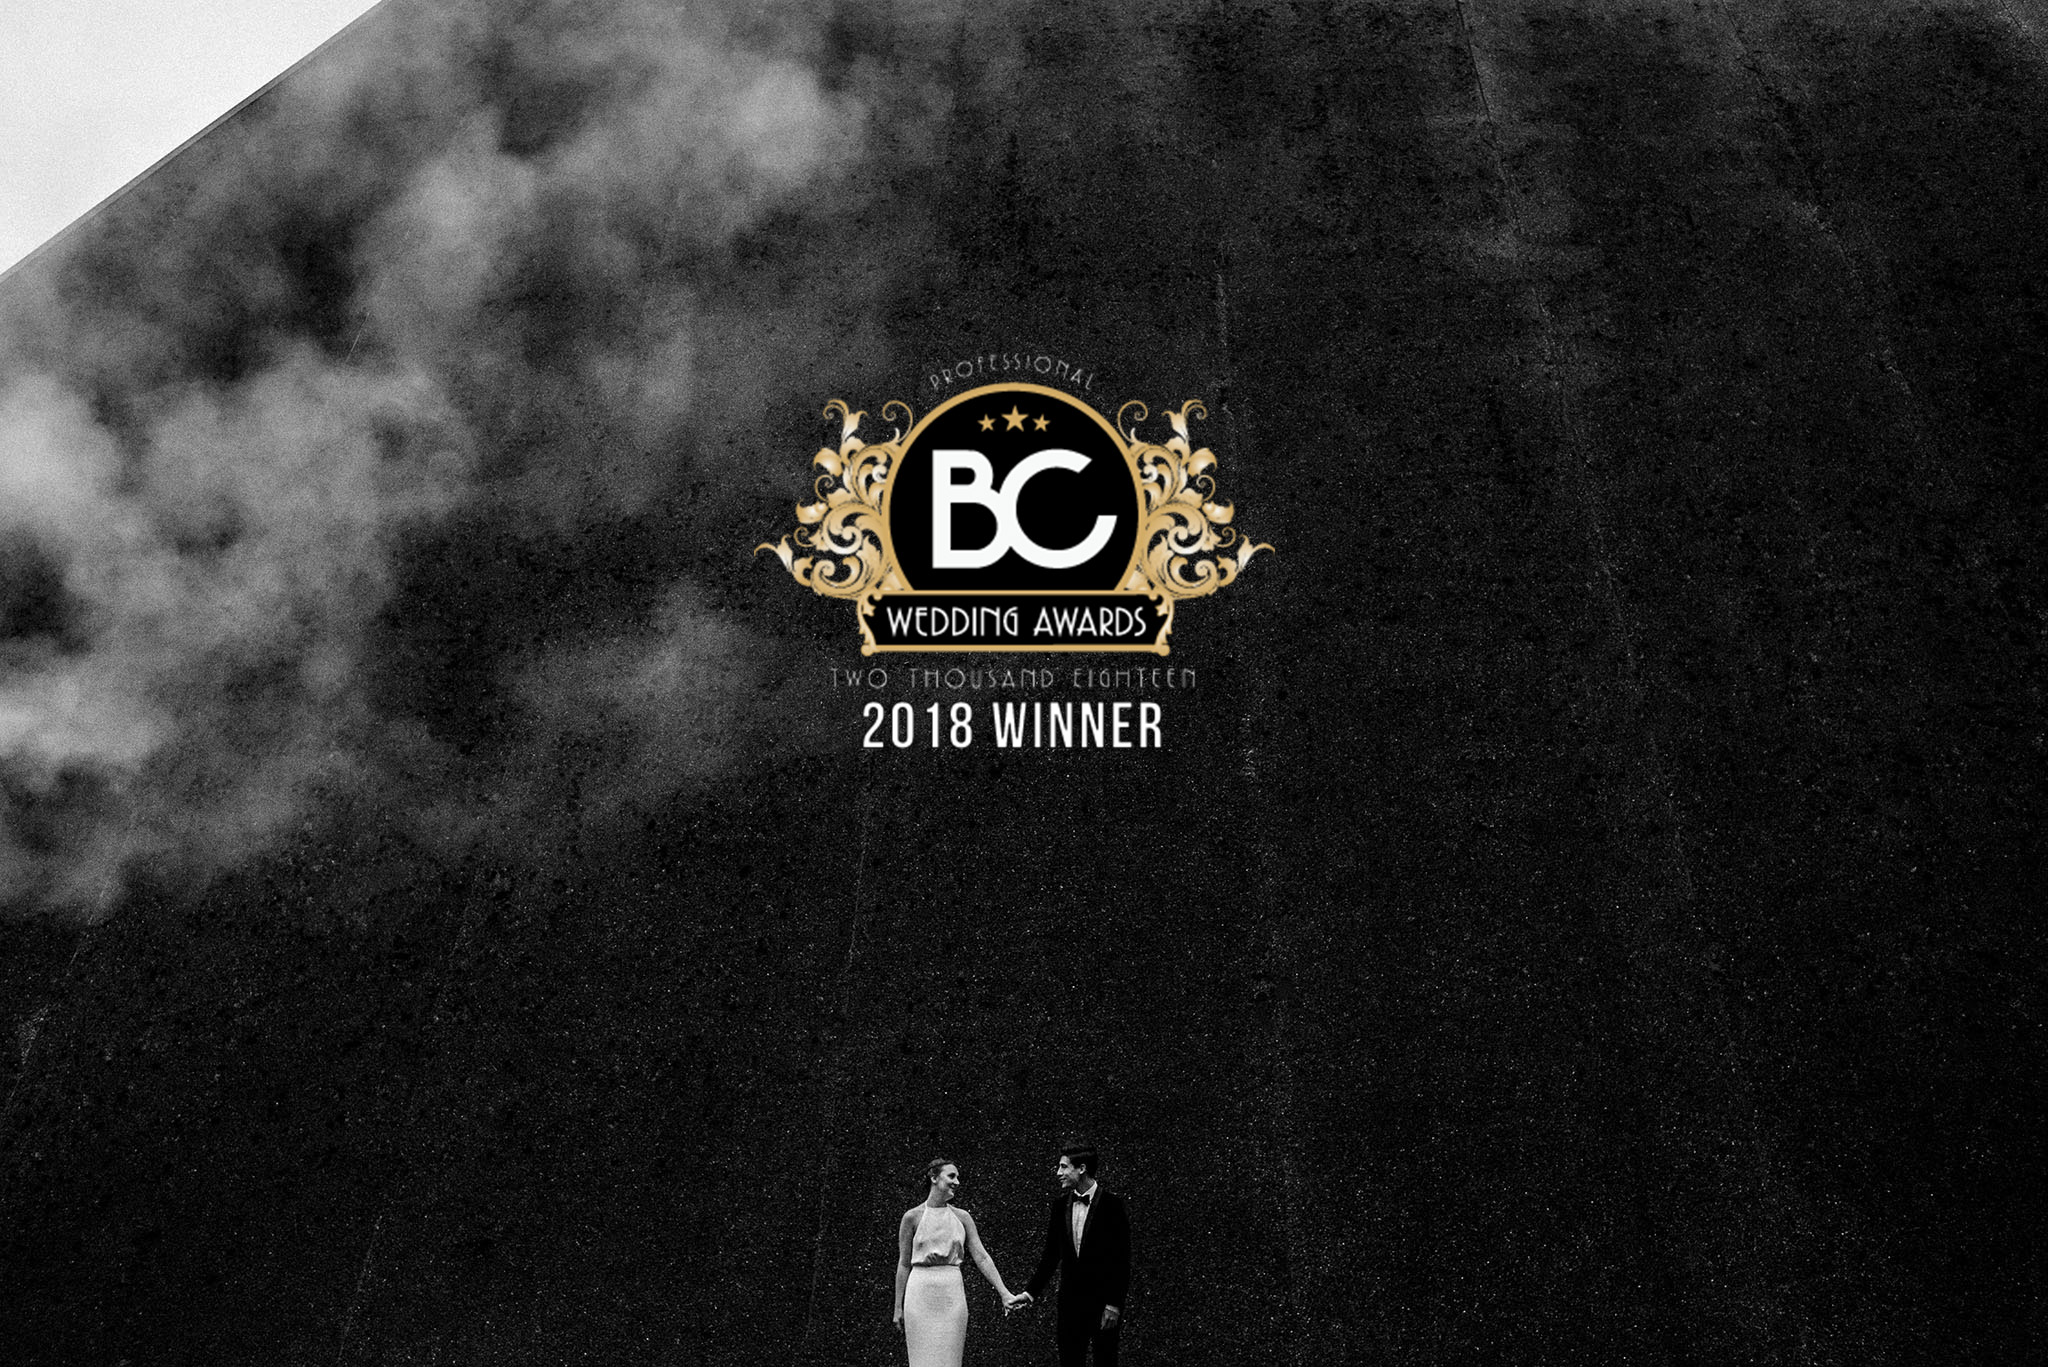 BCWeddingAwardsIndustryAchievement